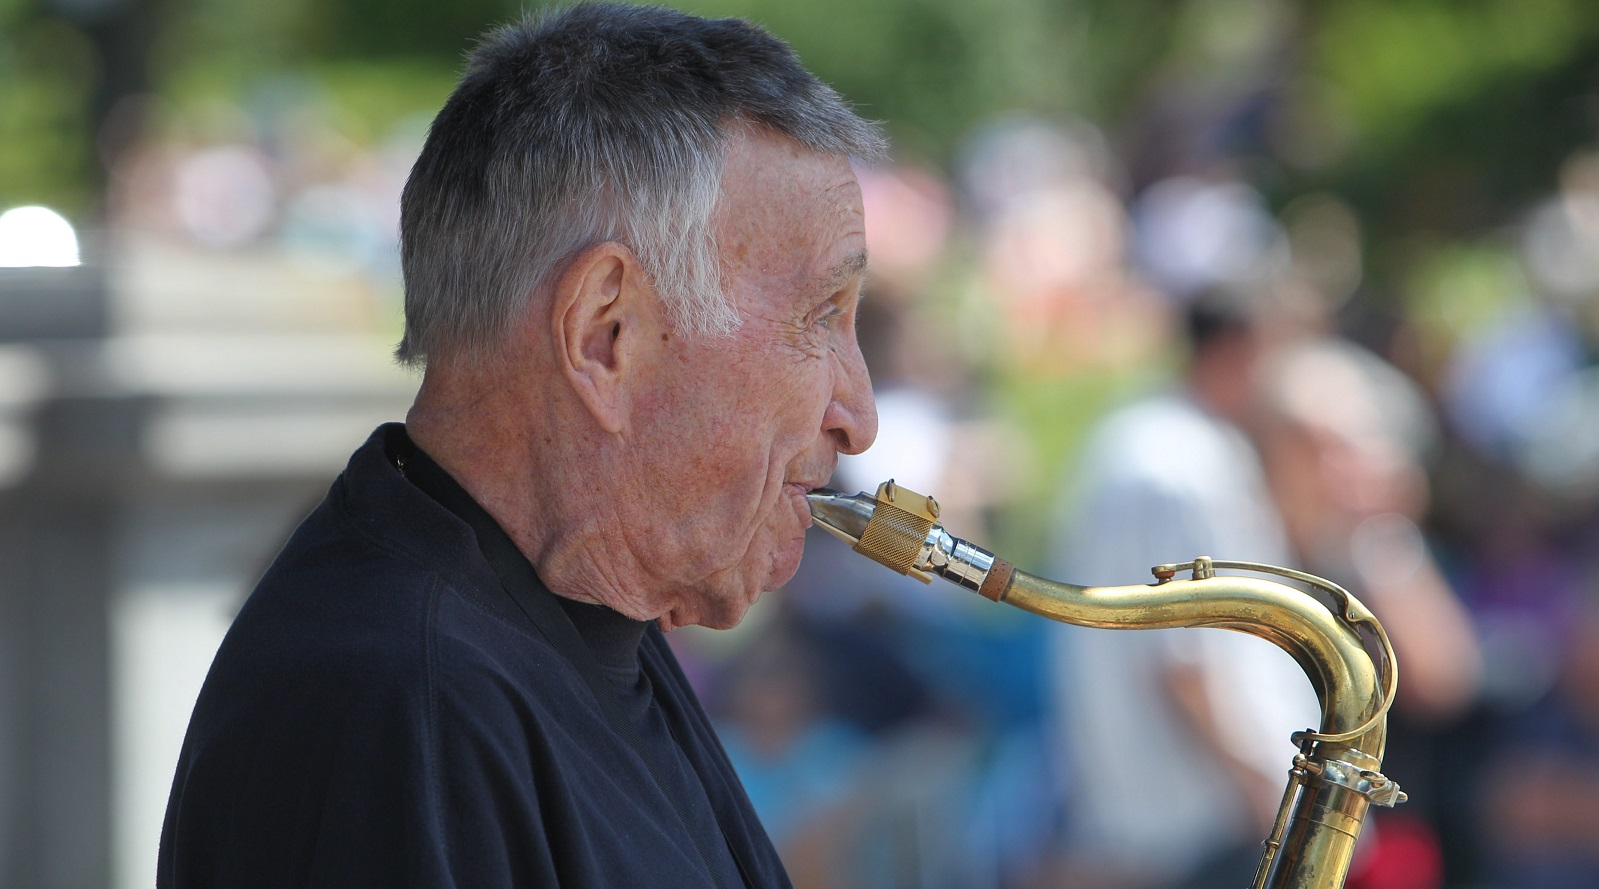 A large crowd showed up to hear the music of Don Rice at Jazz at the Albright-Knox. (Sharon Cantillon/Buffalo News file photo)